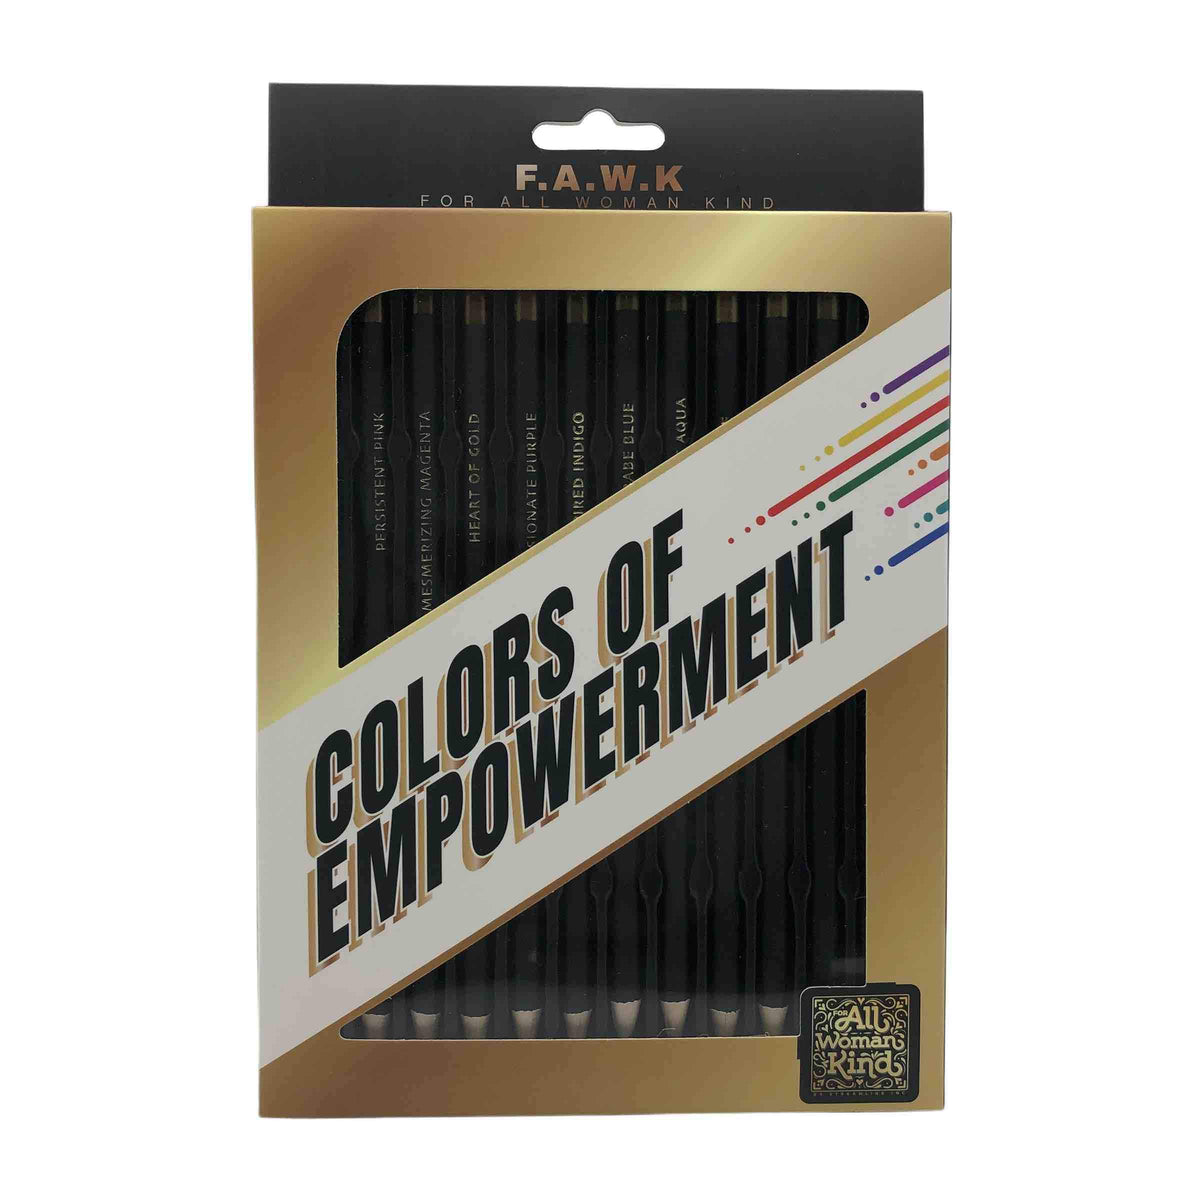 F.A.W.K. Colors of Empowerment